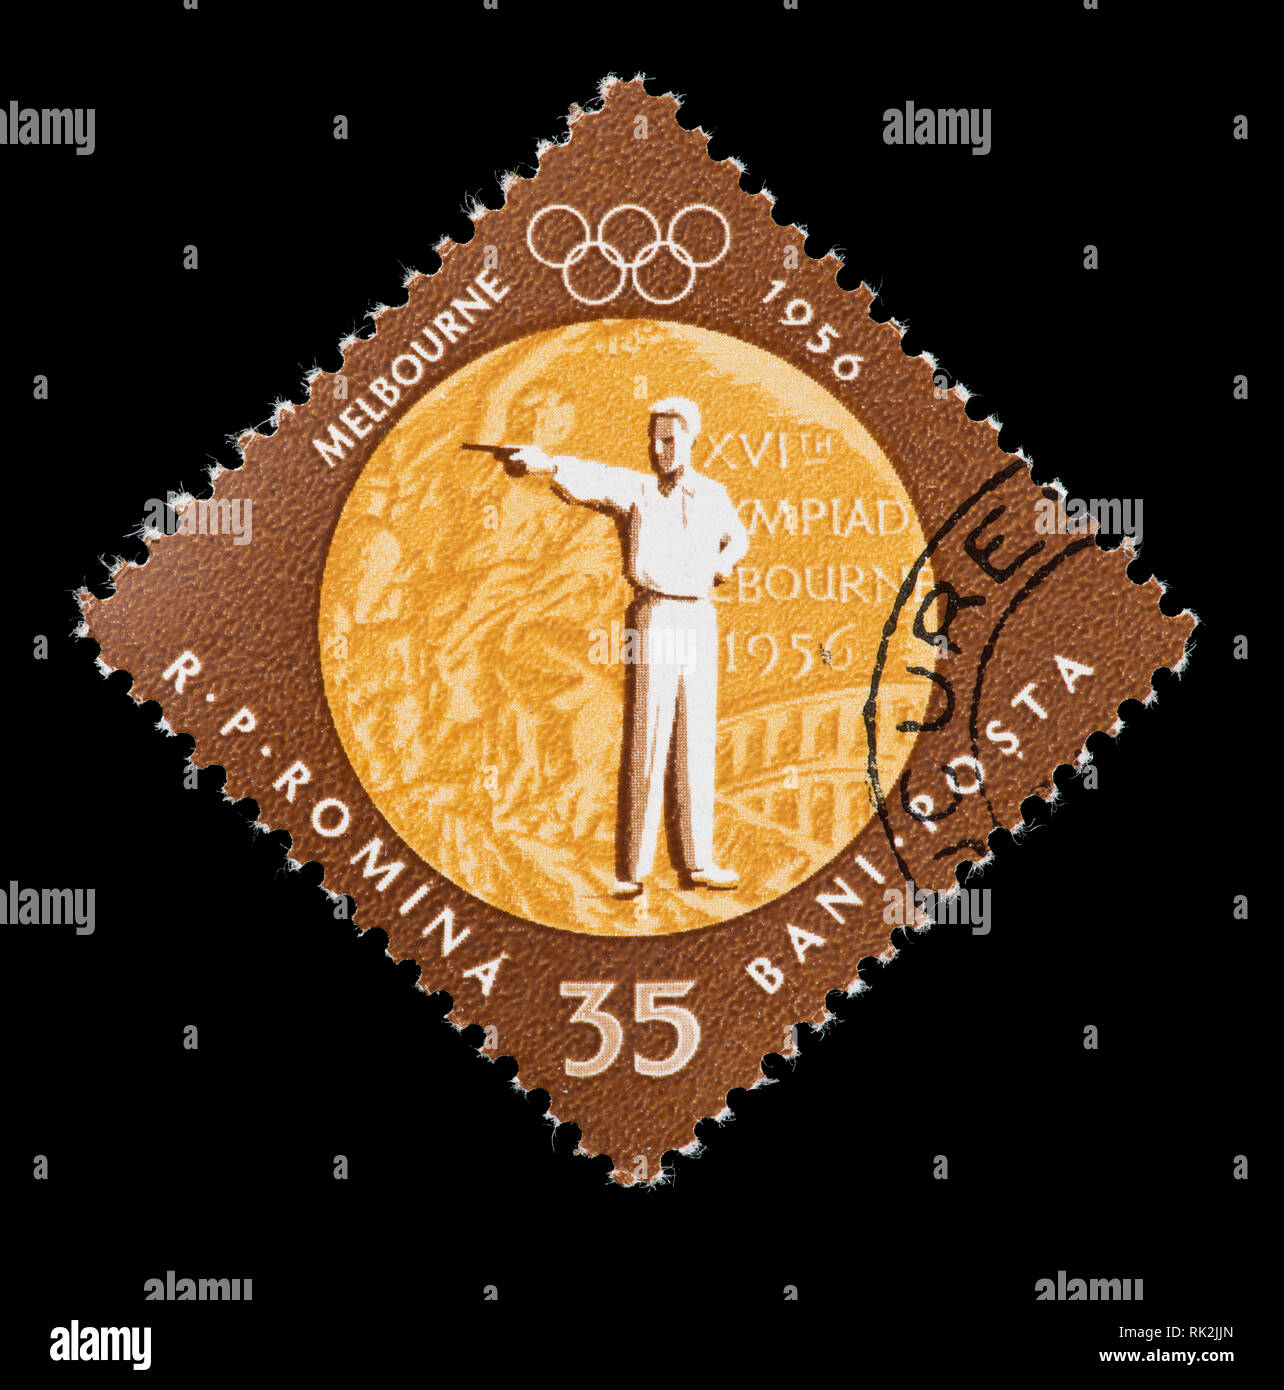 Postage stamp from Romania depicting pistol shooting, issued for gold medal in this event in the 1956 Summer Olympic Games in Australia. - Stock Image